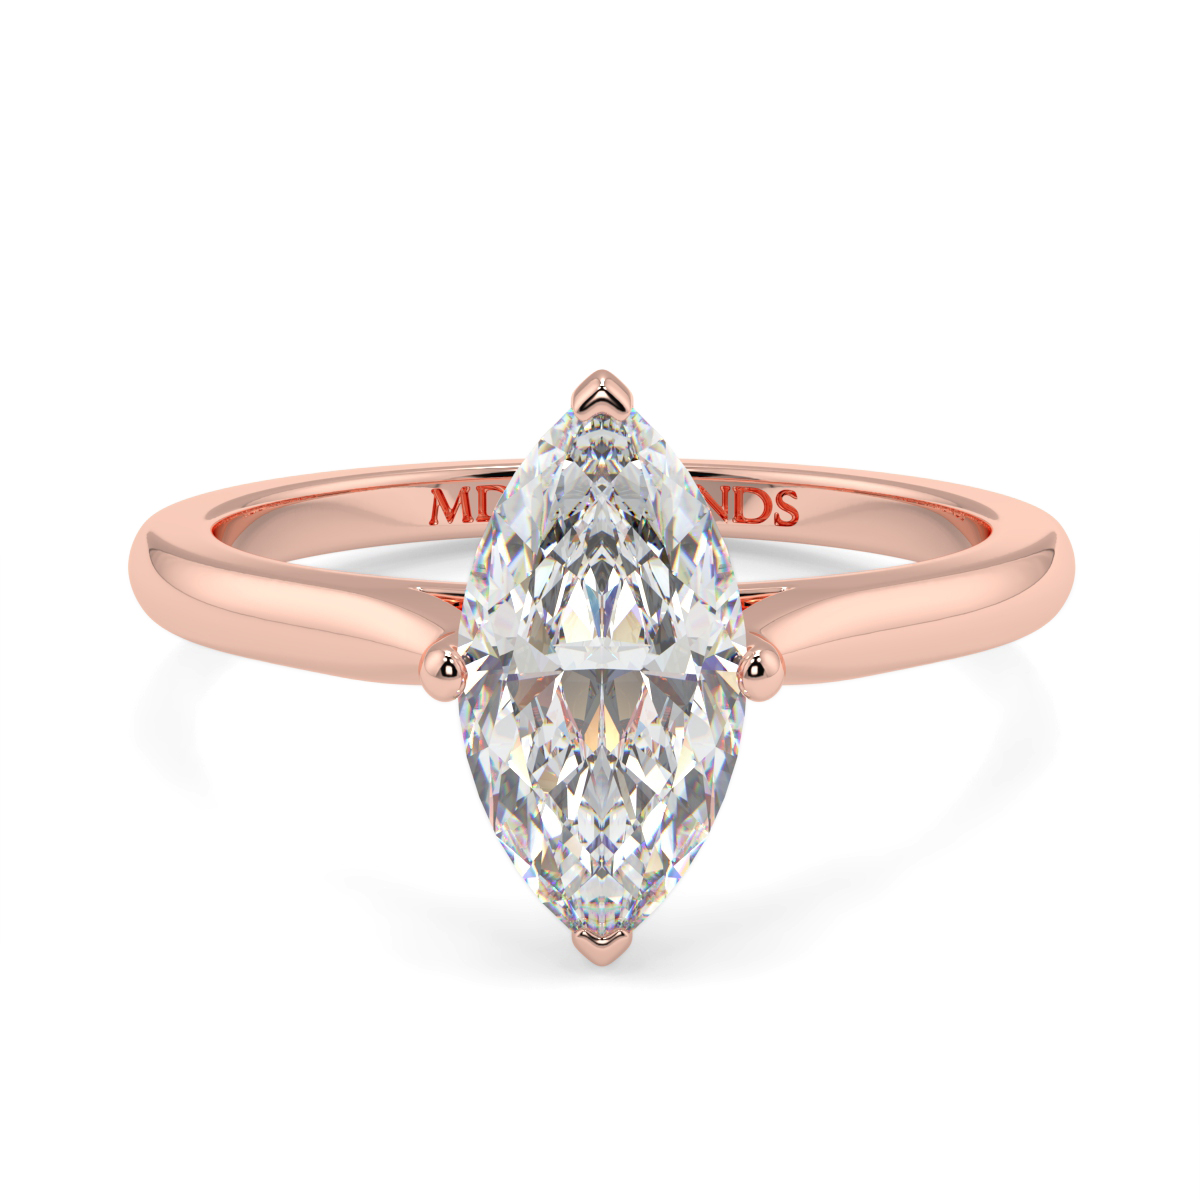 Solitaire 4 Claw Marquise Ring